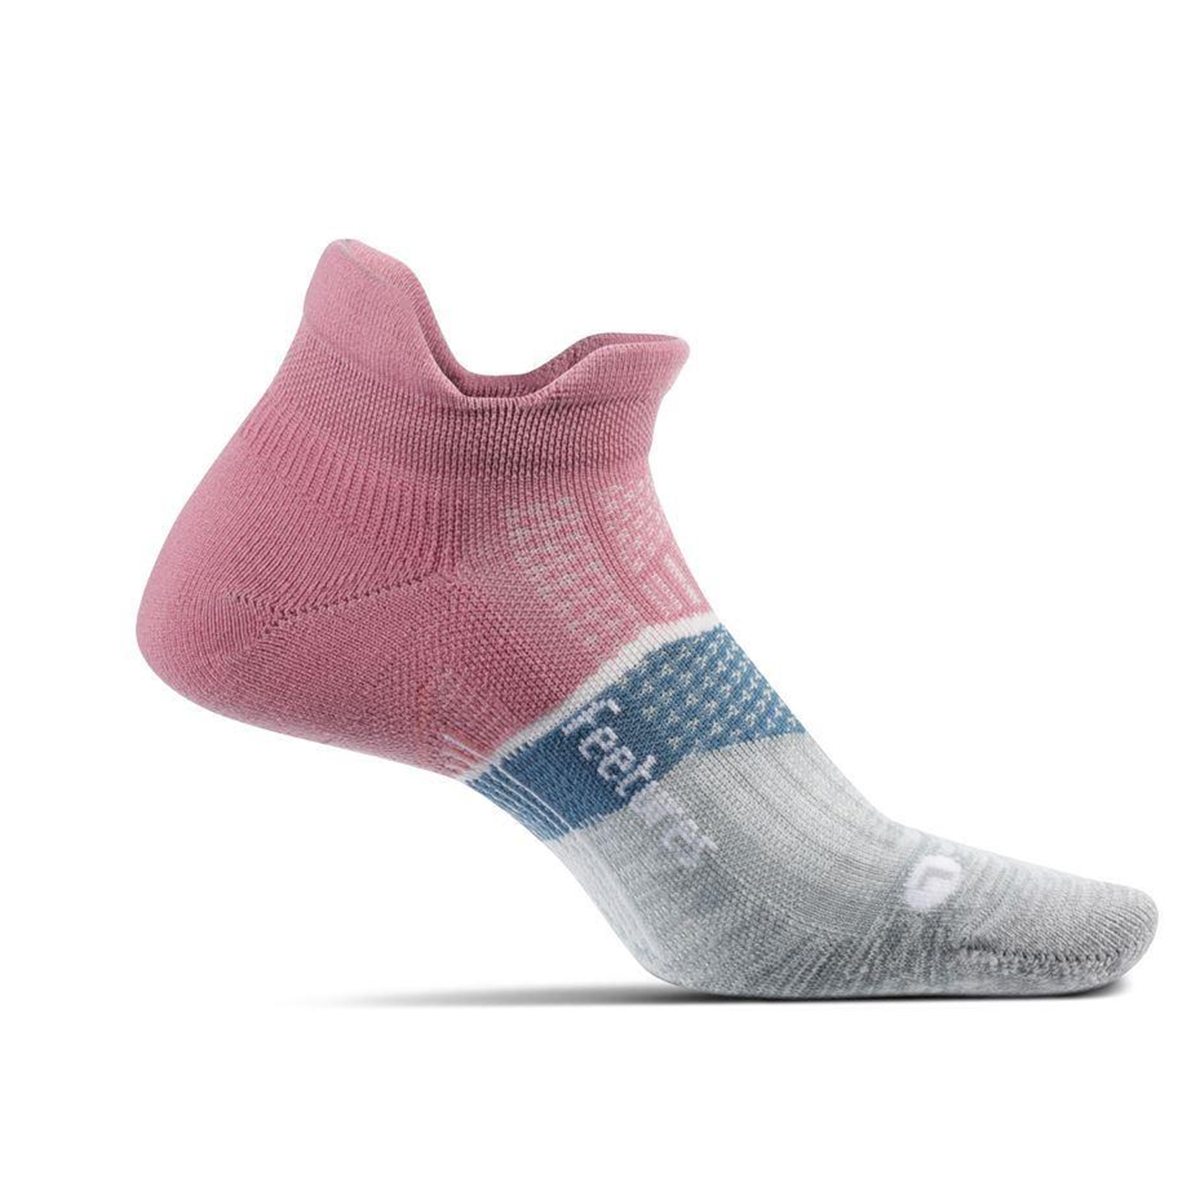 Feetures Elite Ultra Light No Show Tab Socks - Color: Heather Rose - Size: S, Heather Rose, large, image 1